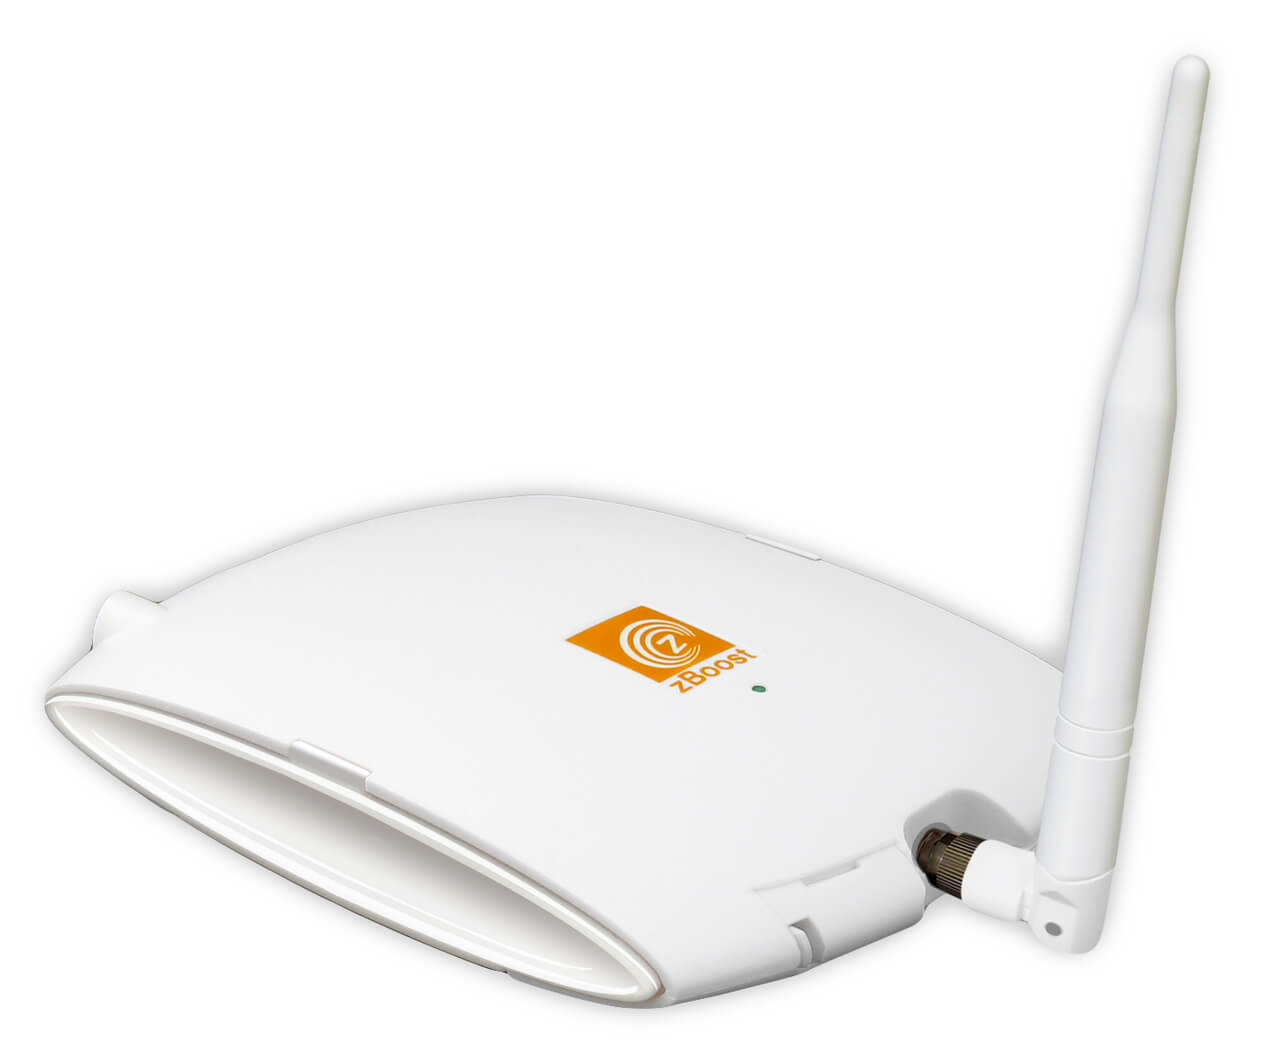 zBoost Cell Phone Signal Booster ZB545